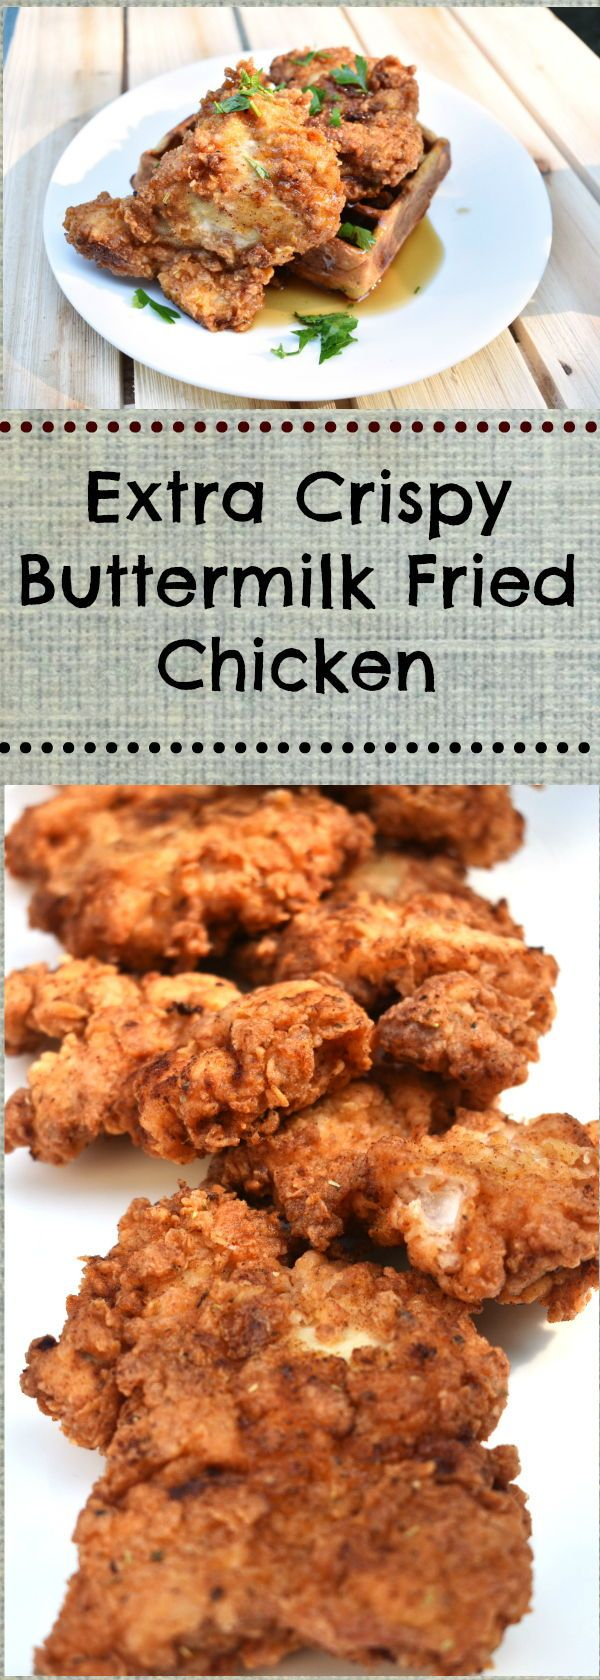 Extra Crispy Buttermilk Fried Chicken On The Eaten Path Recipe Buttermilk Fried Chicken Fried Chicken Food Dishes